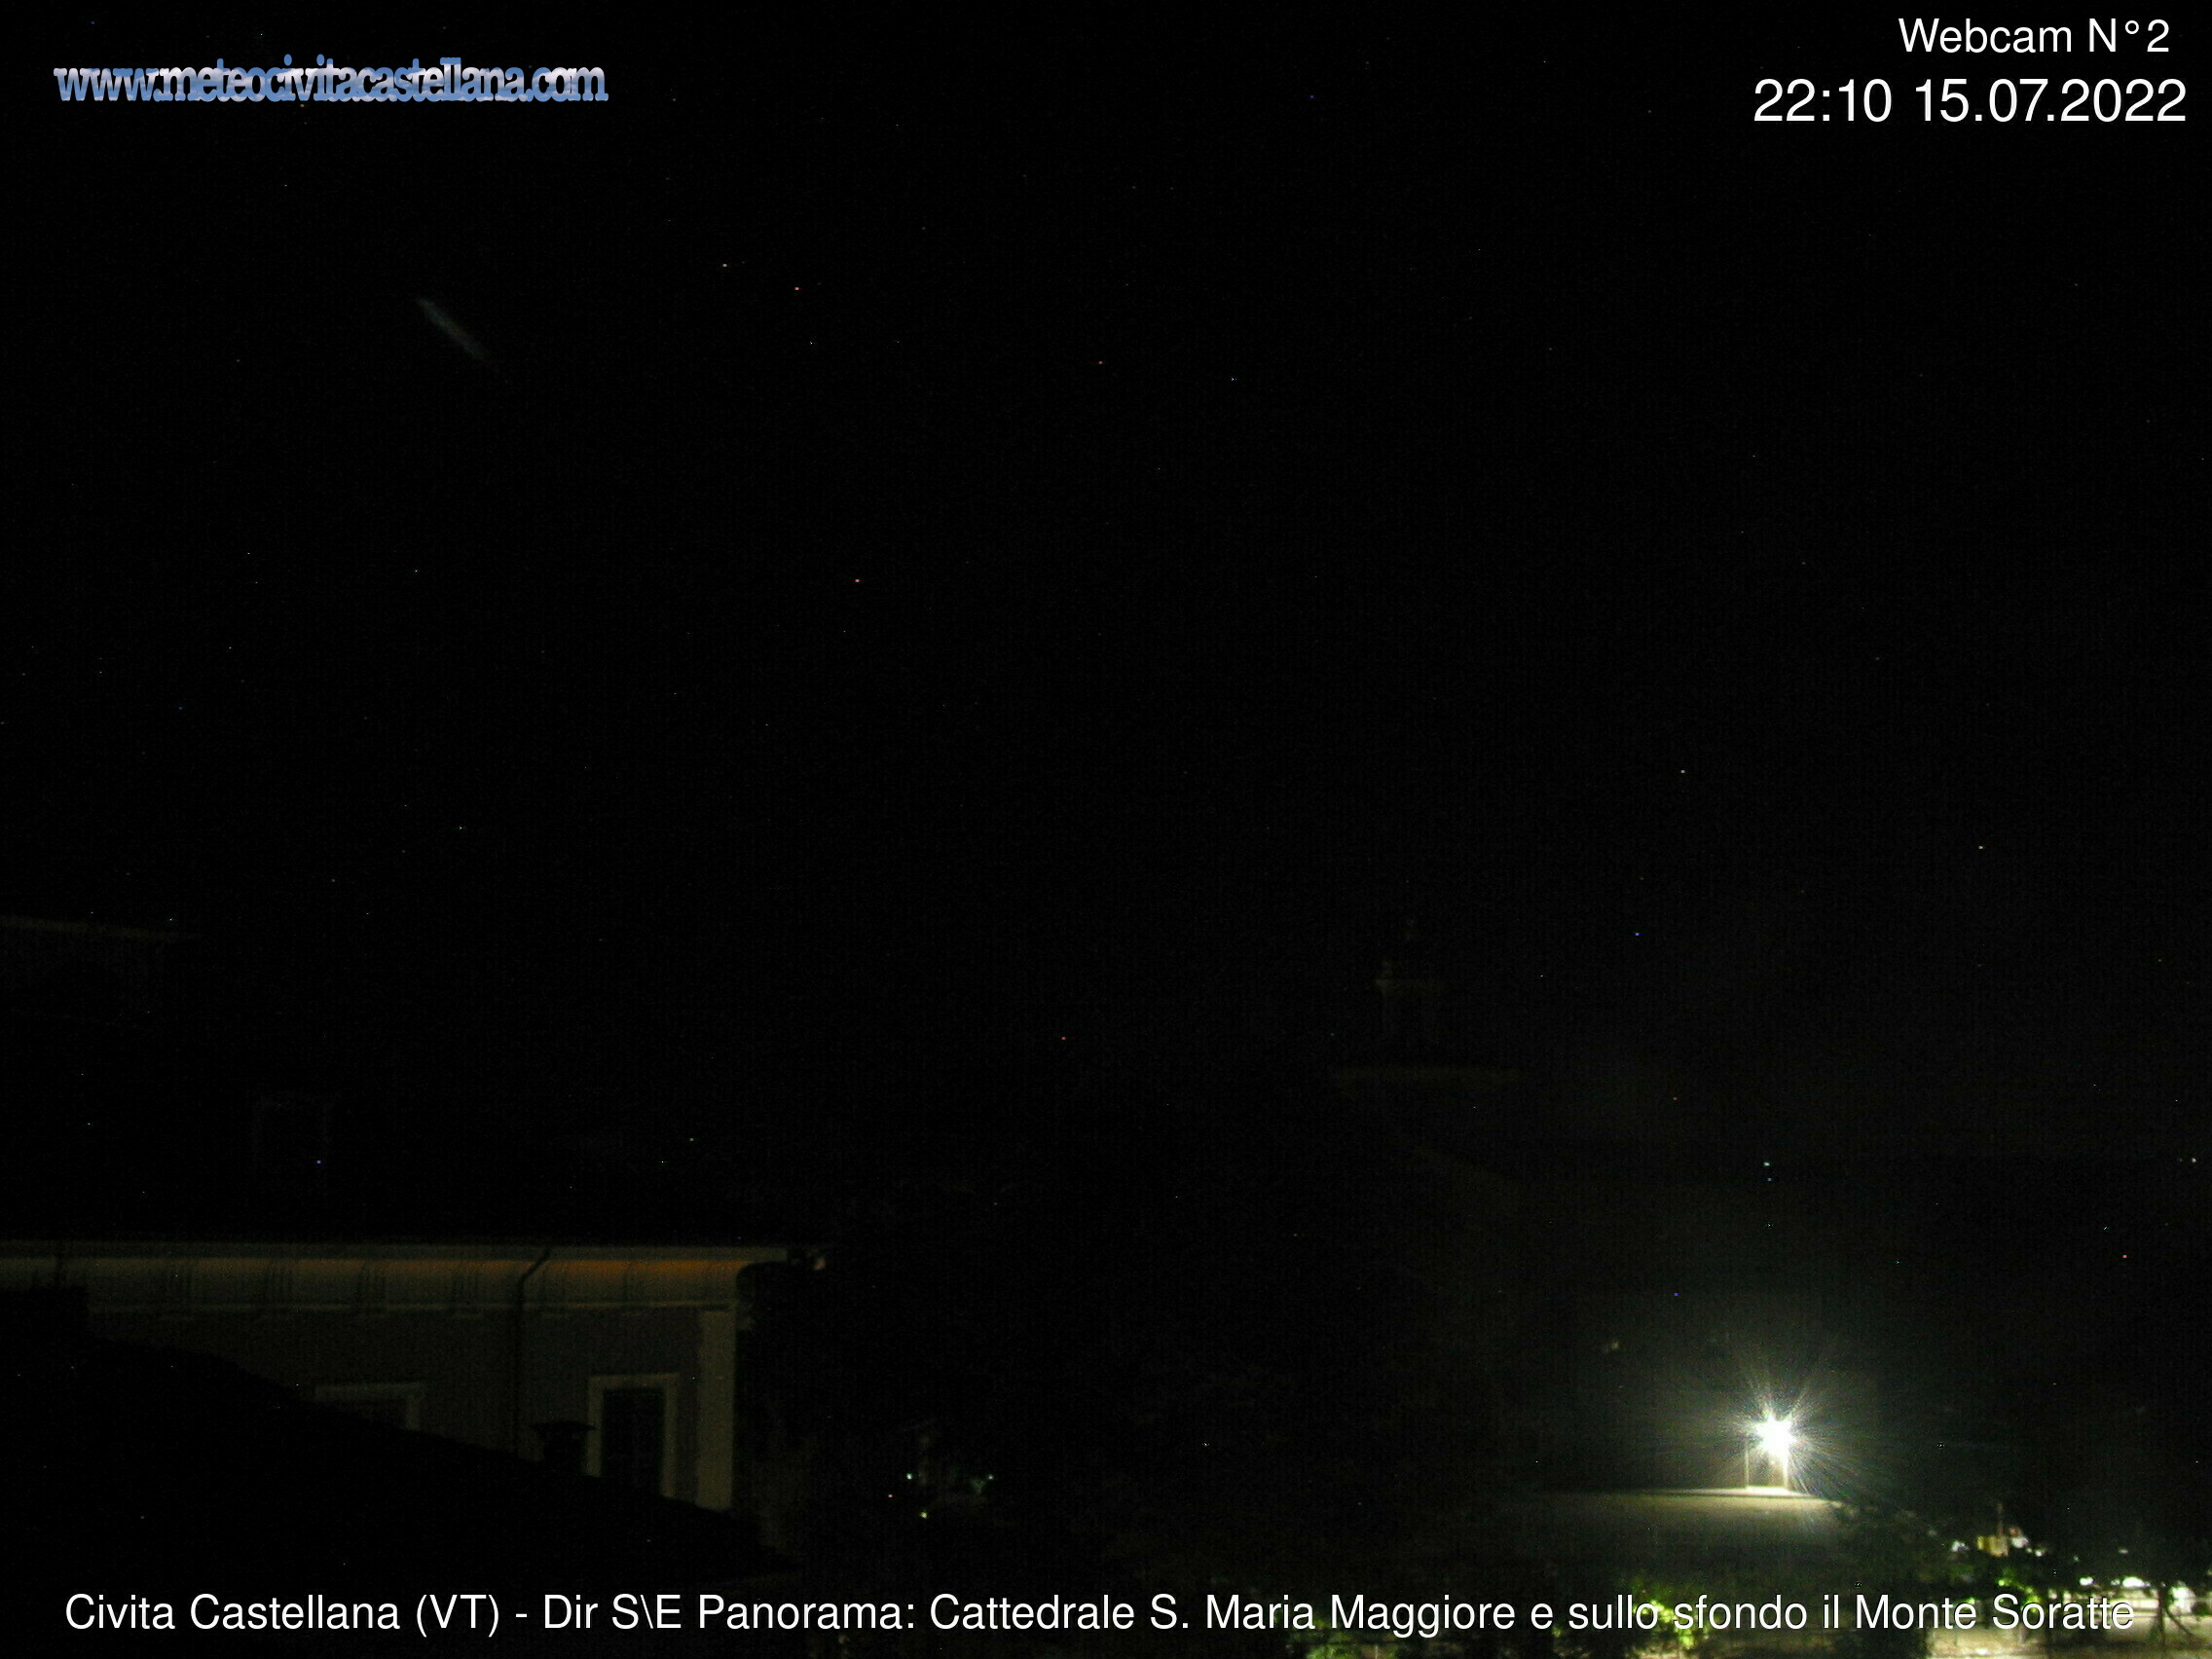 Webcam Civita Castellana (VT) Webcam2